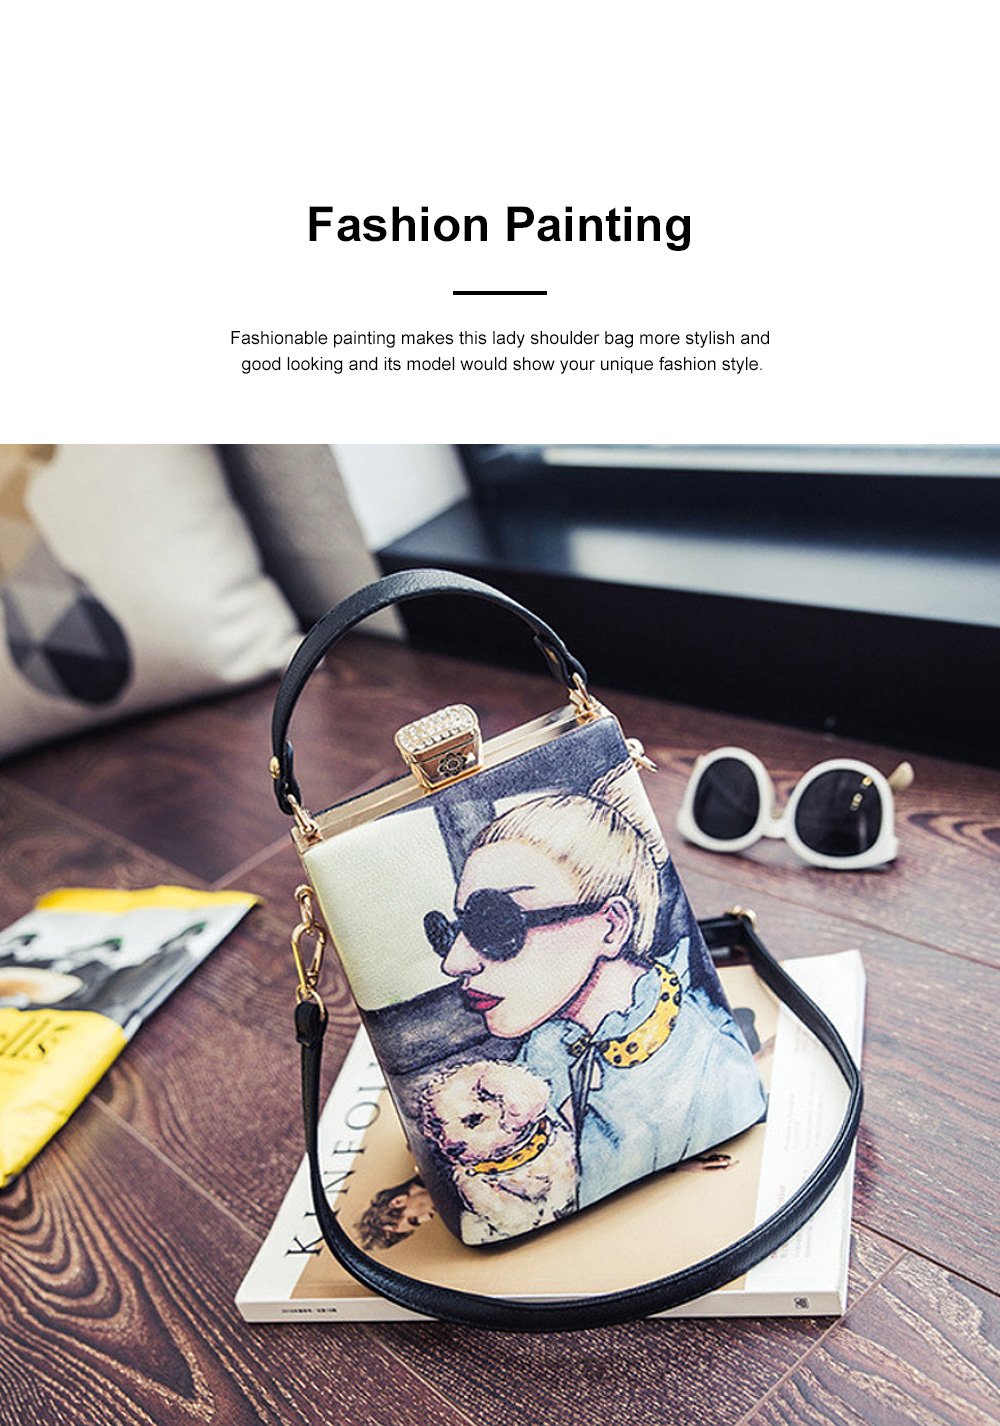 Fashion Painting Small Women Shoulder Bag with Comfortable Handle, Quality Smooth PU Leather Lady Bag 4